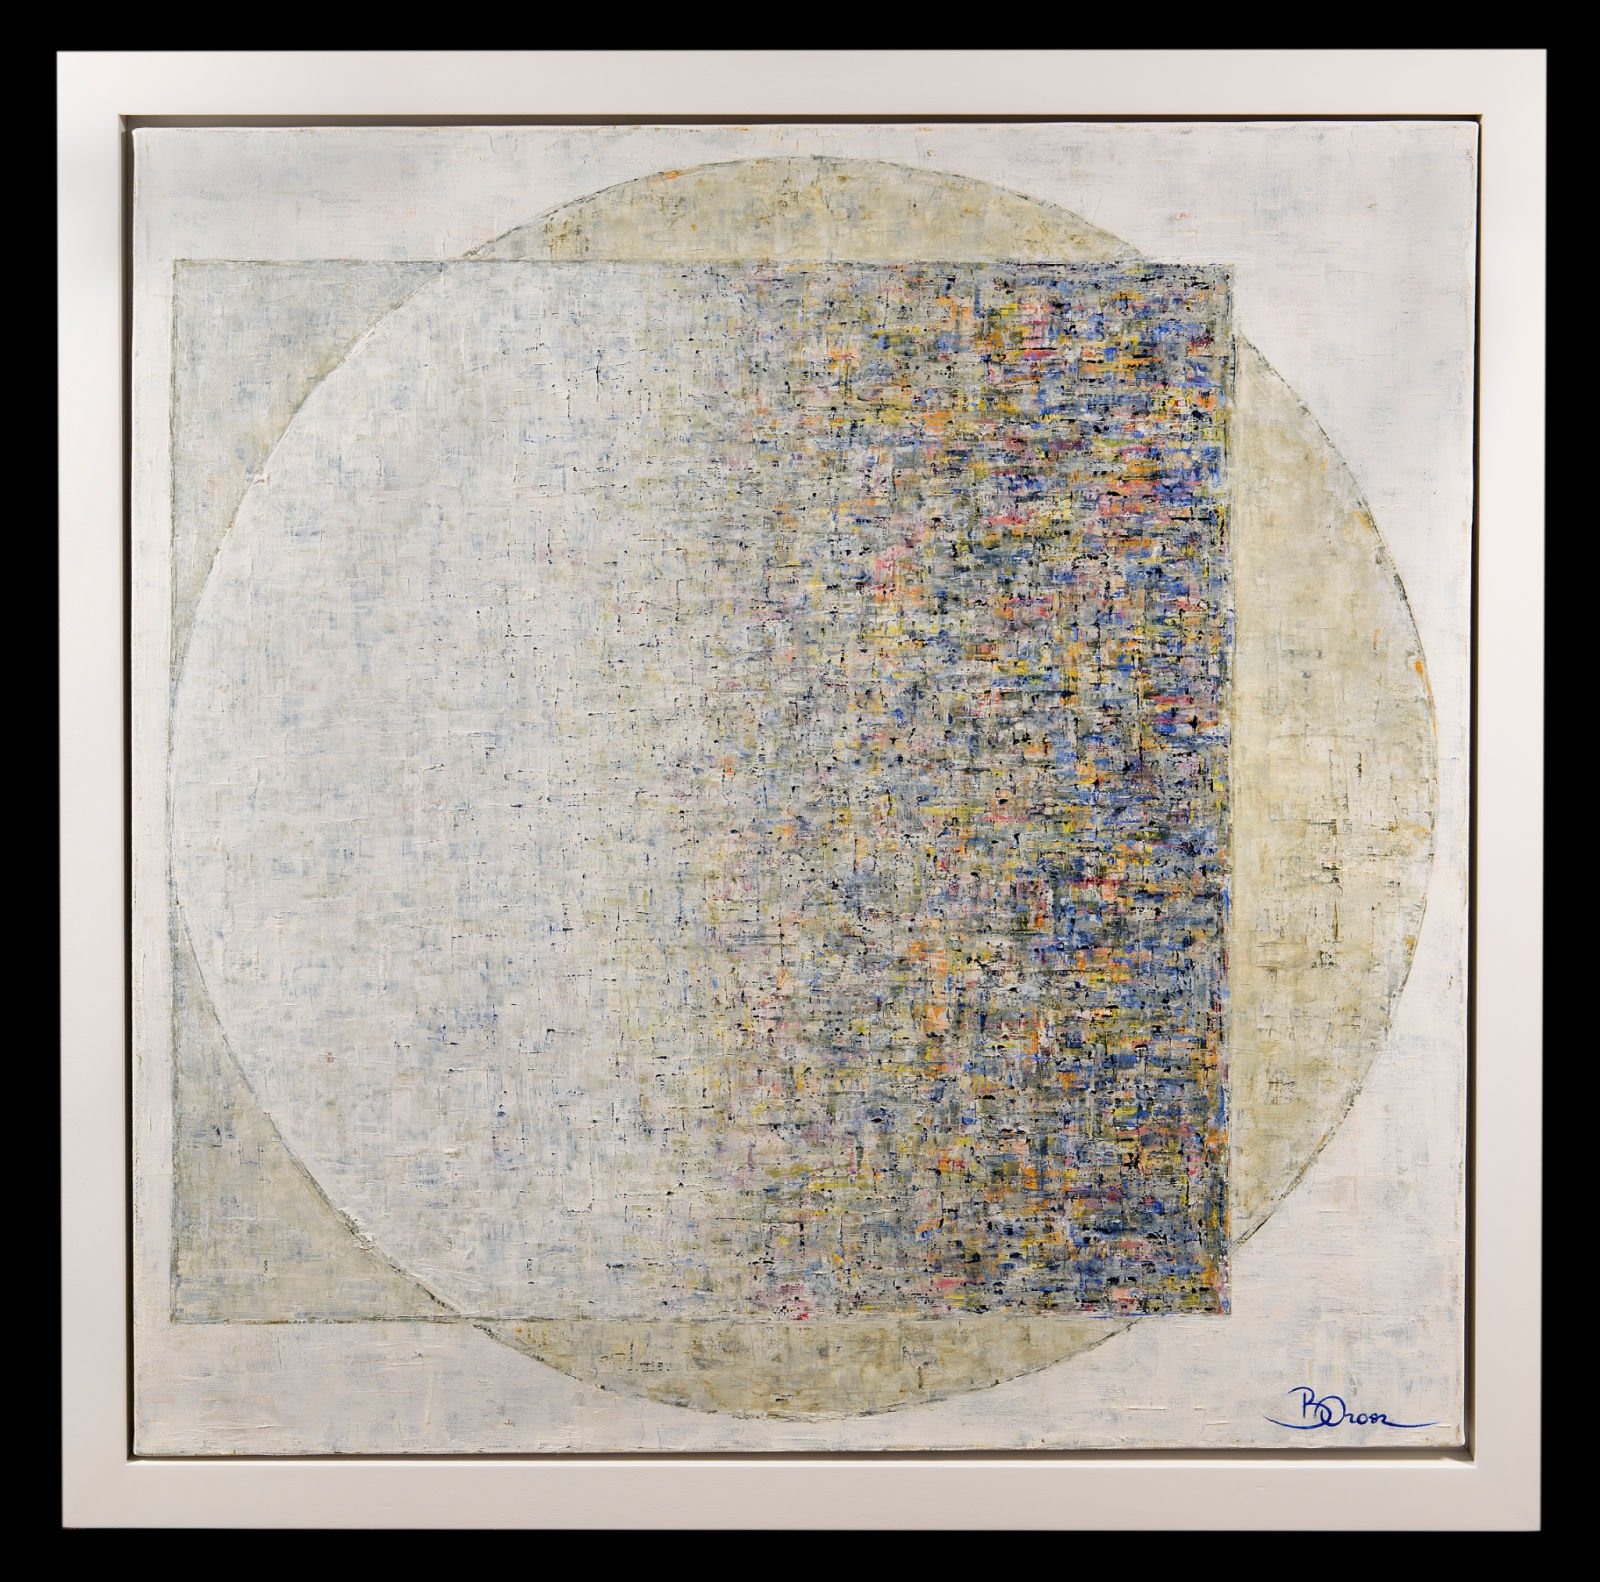 Minimalist painting with a square overlaping a circle made up of dashes of red, yellow and black paint fading in and out